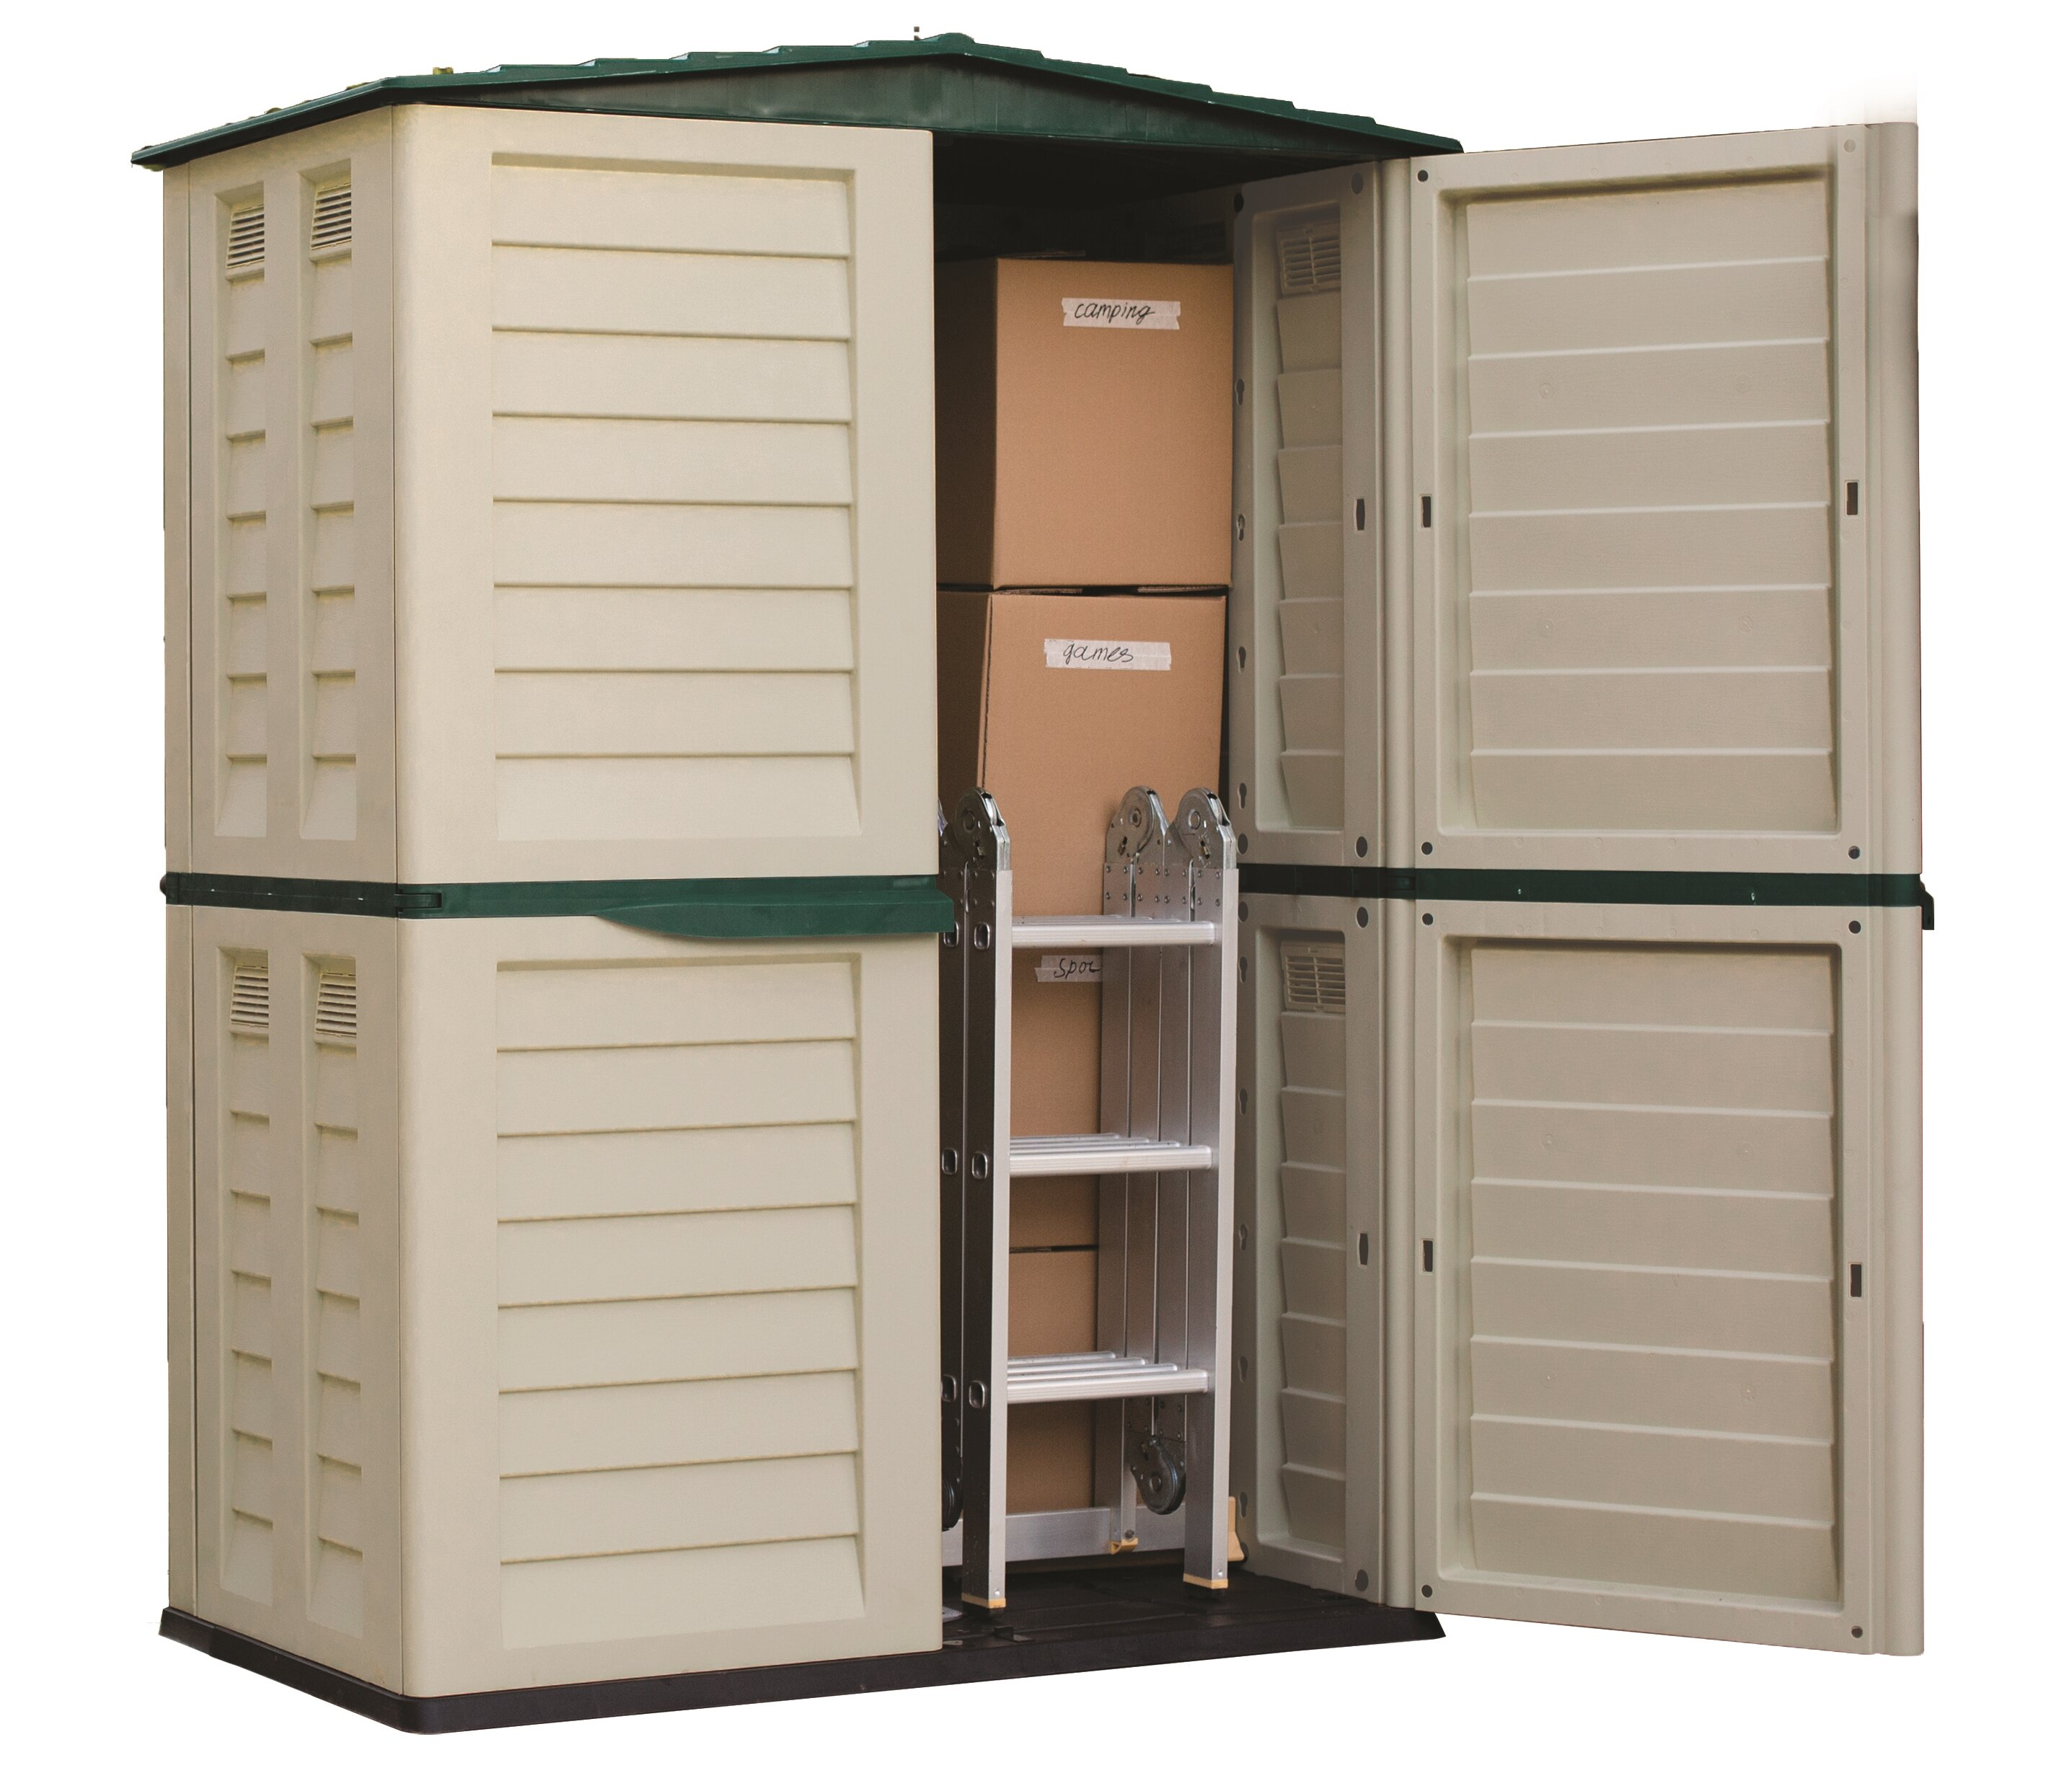 wayfair shed sheds utility d in garbage rubbermaid ft can plastic keyword w storage horizontal x